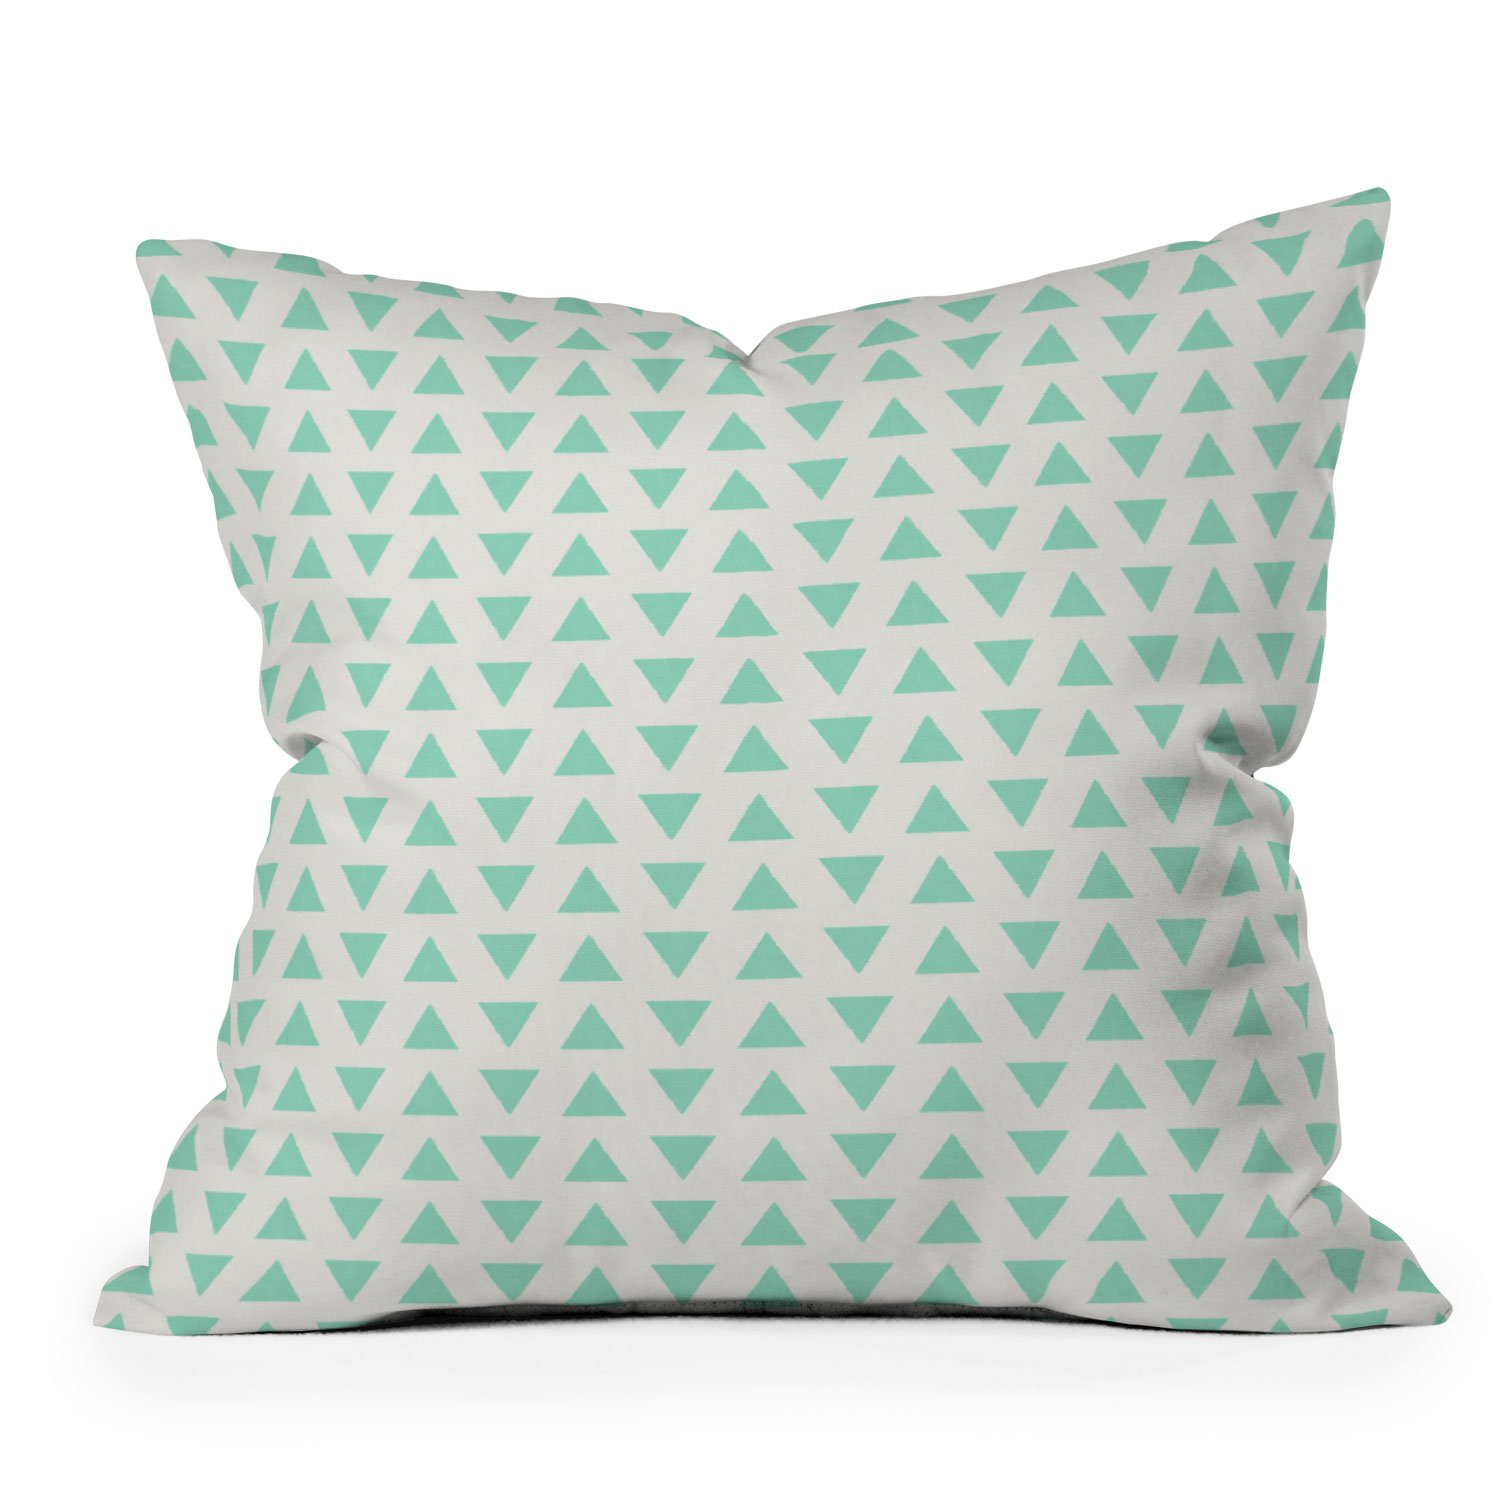 Image of Allyson Johnson Minty Triangles Throw Pillow